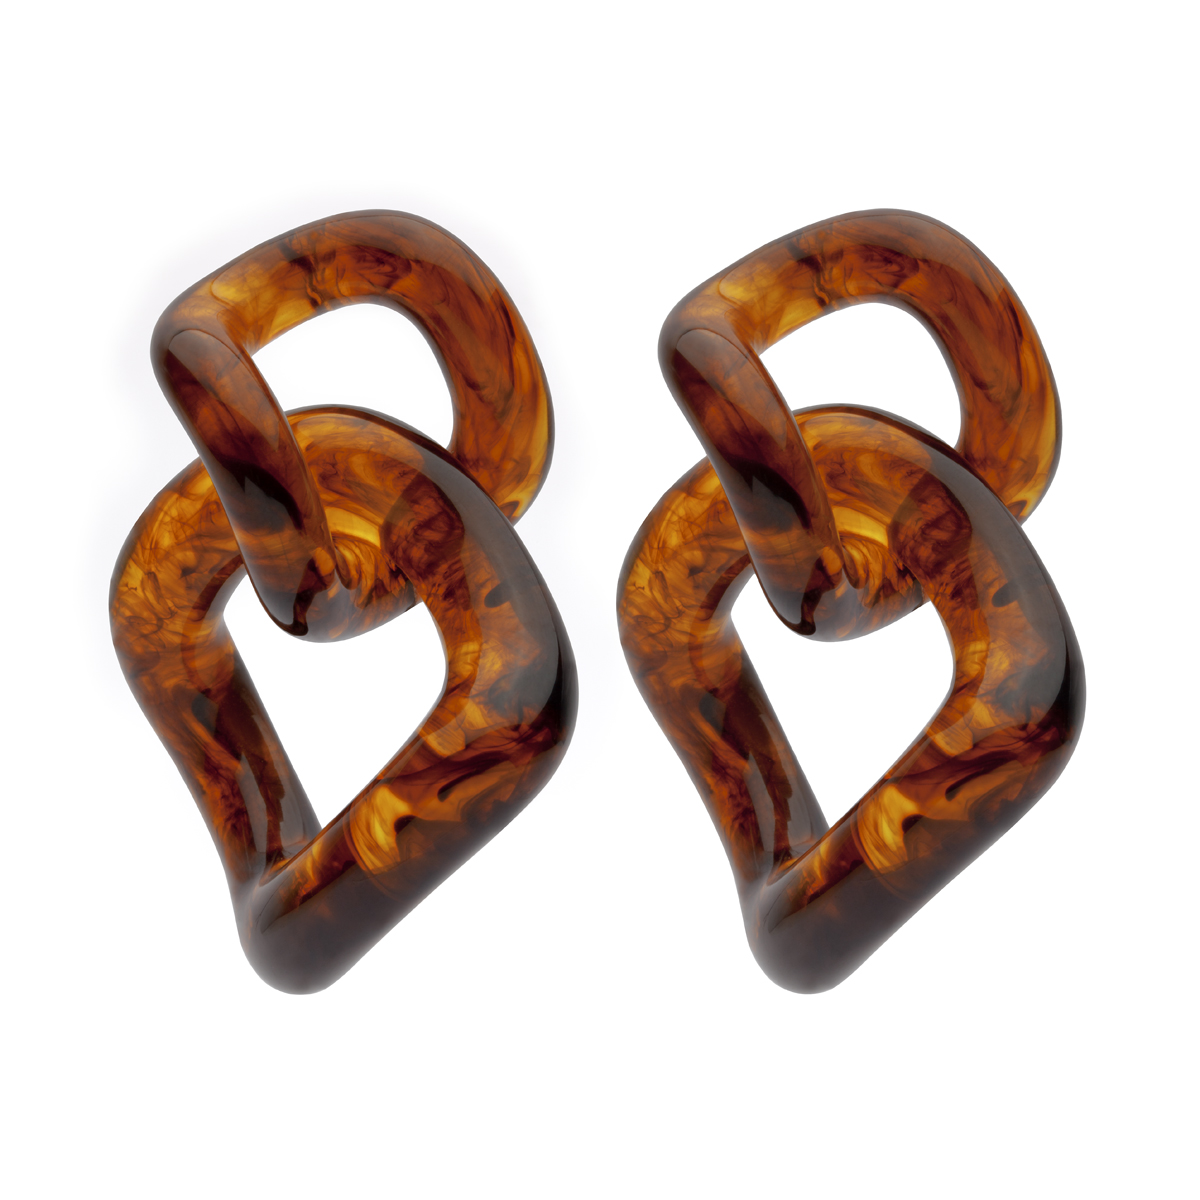 Amber Sceats Tortoiseshell Resin Eva Earrings